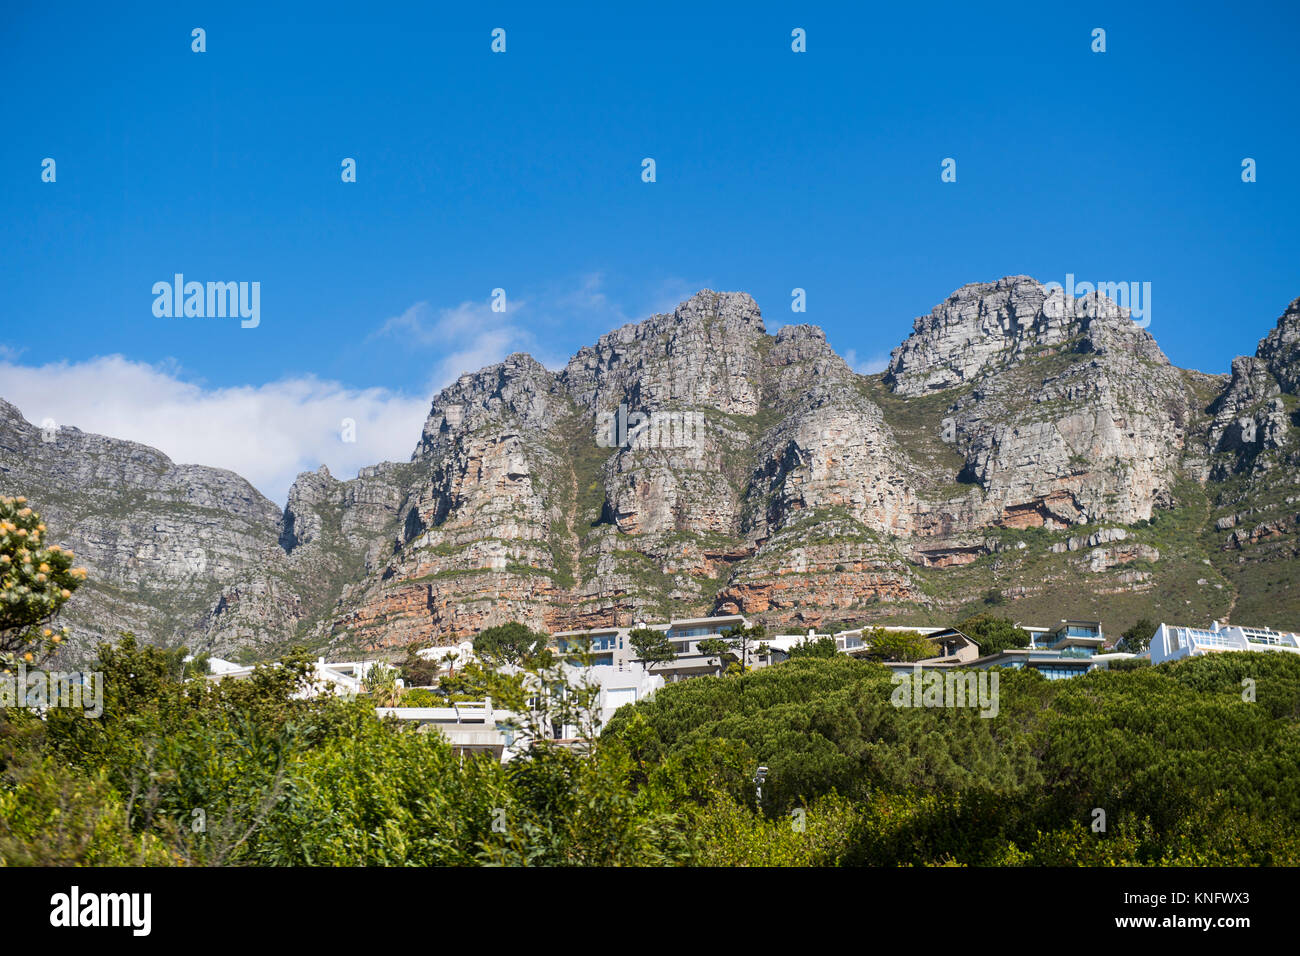 Houses below Table Mountain in Cape Town, South Africa - Stock Image